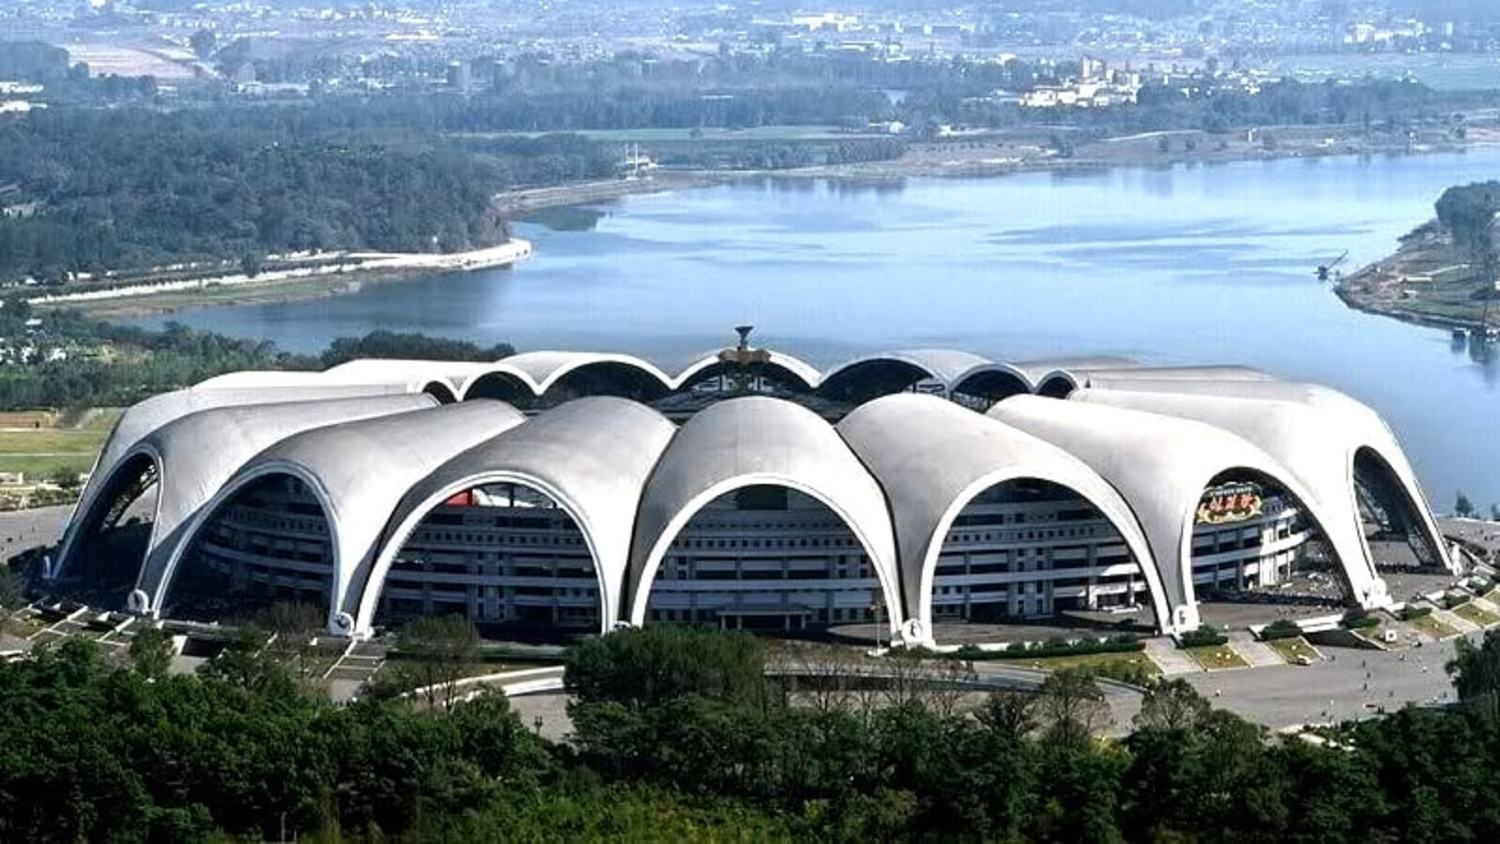 The Top 5 Biggest Football Stadiums